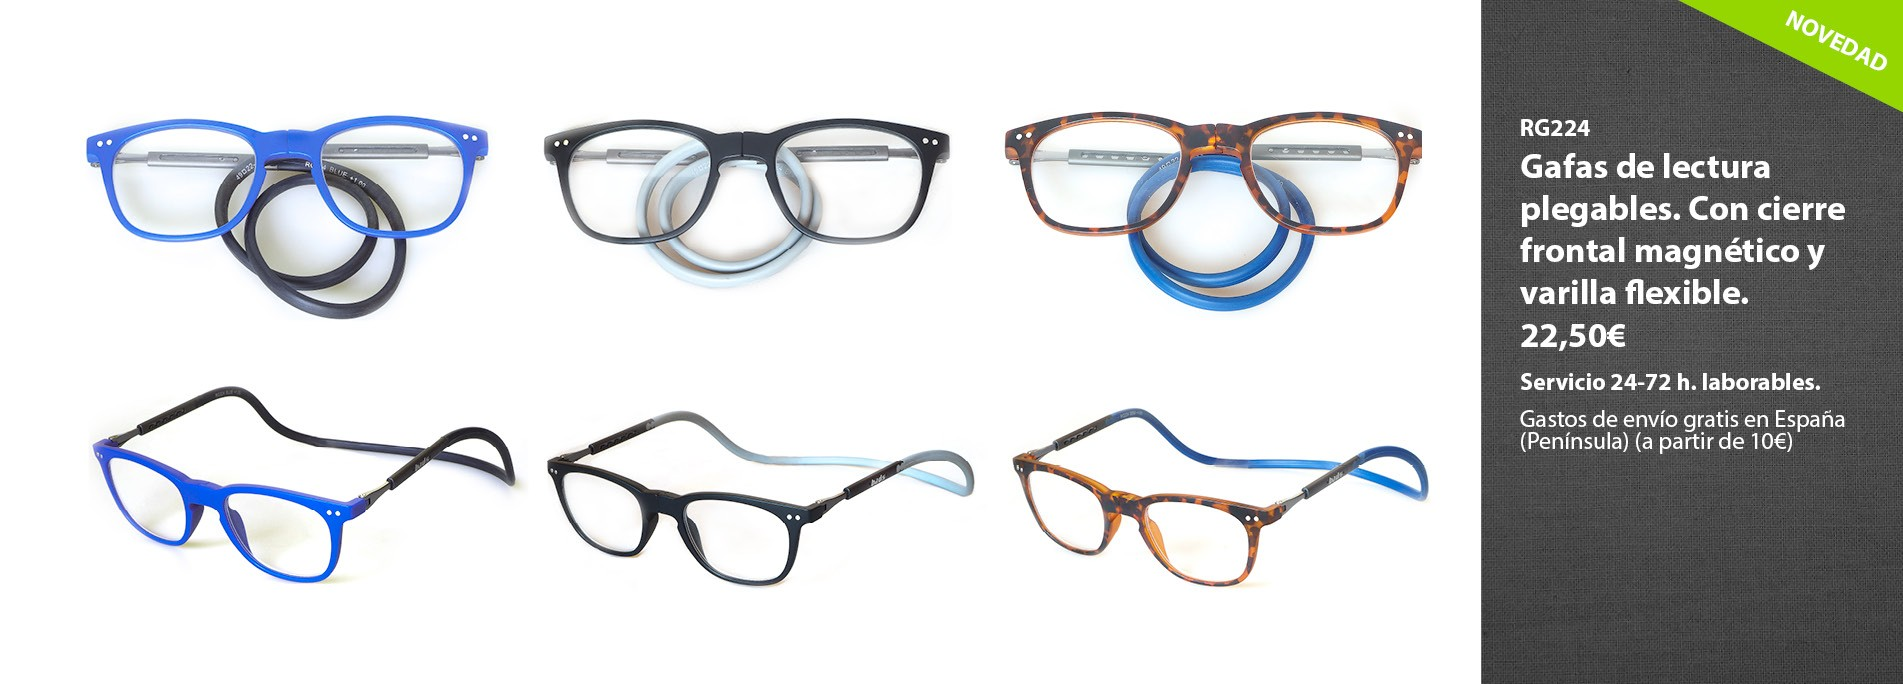 RG224 reading glasses